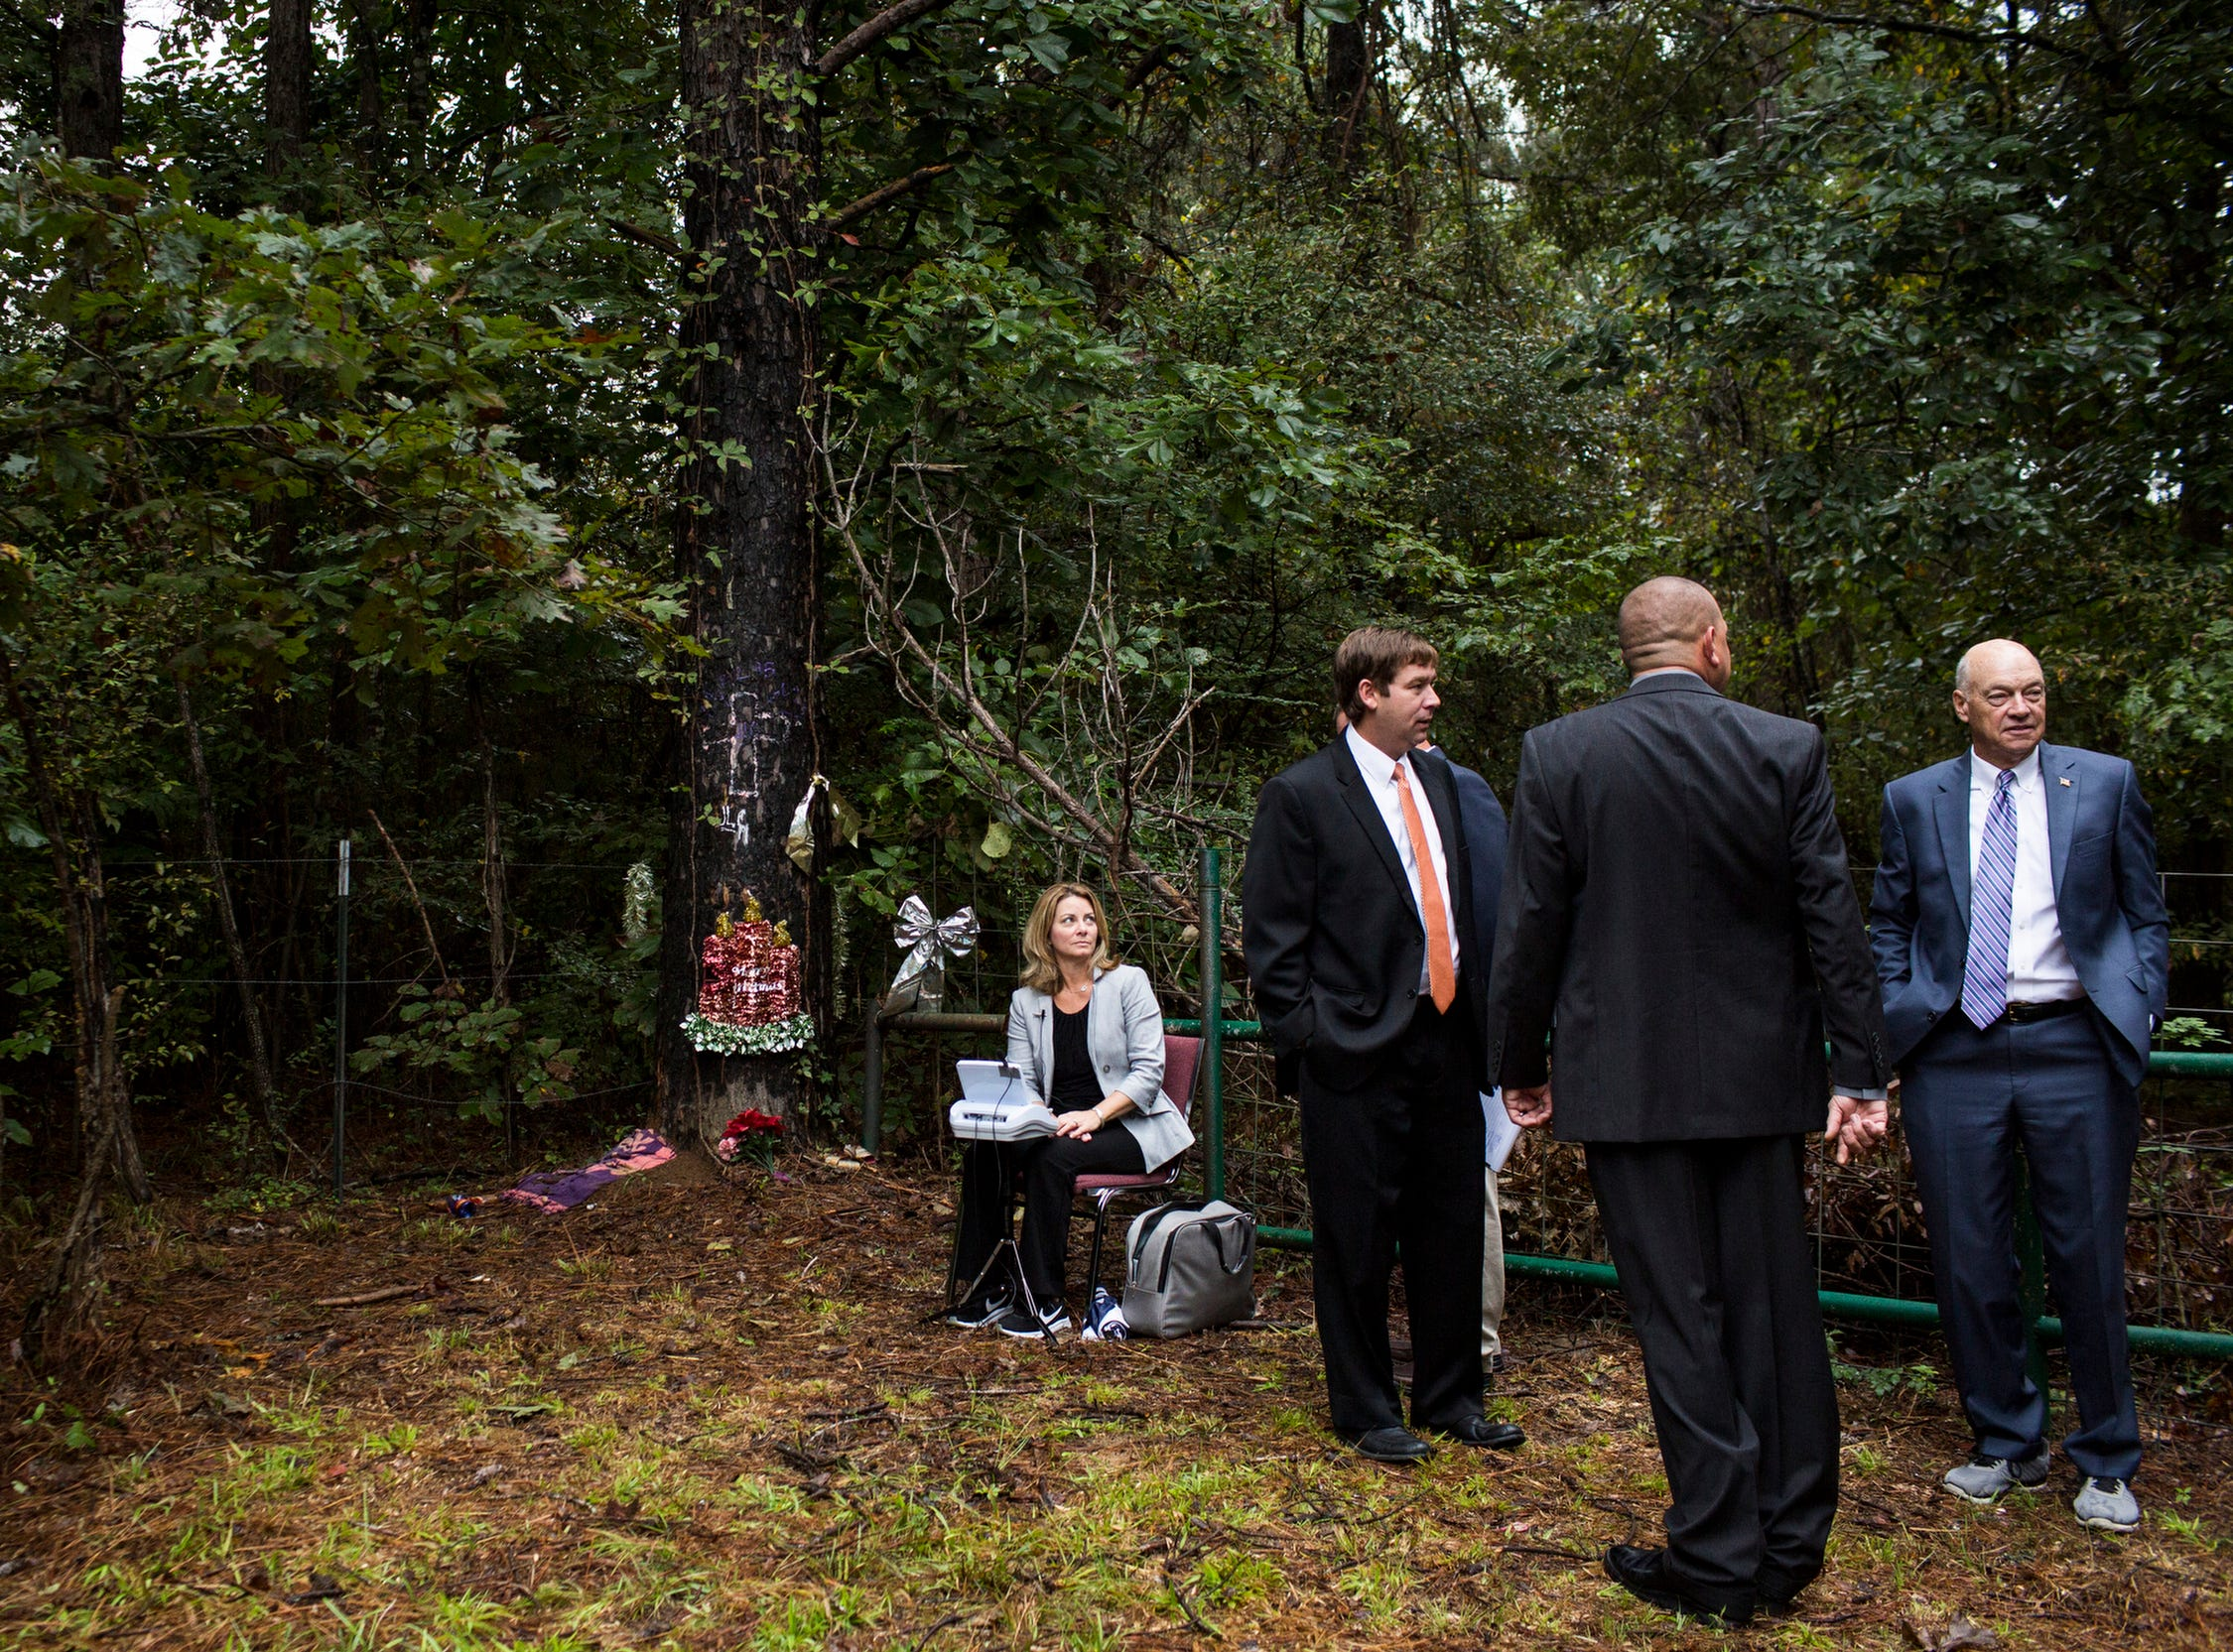 September 27 2018 - People gather before testimony at the scene where Jessica Chambers was burned alive in her car during a field trip on the third day of the retrial of Quinton Tellis. Tellis is charged with burning 19-year-old Jessica Chambers to death almost three years ago on Dec. 6, 2014. Tellis has pleaded not guilty to the murder.